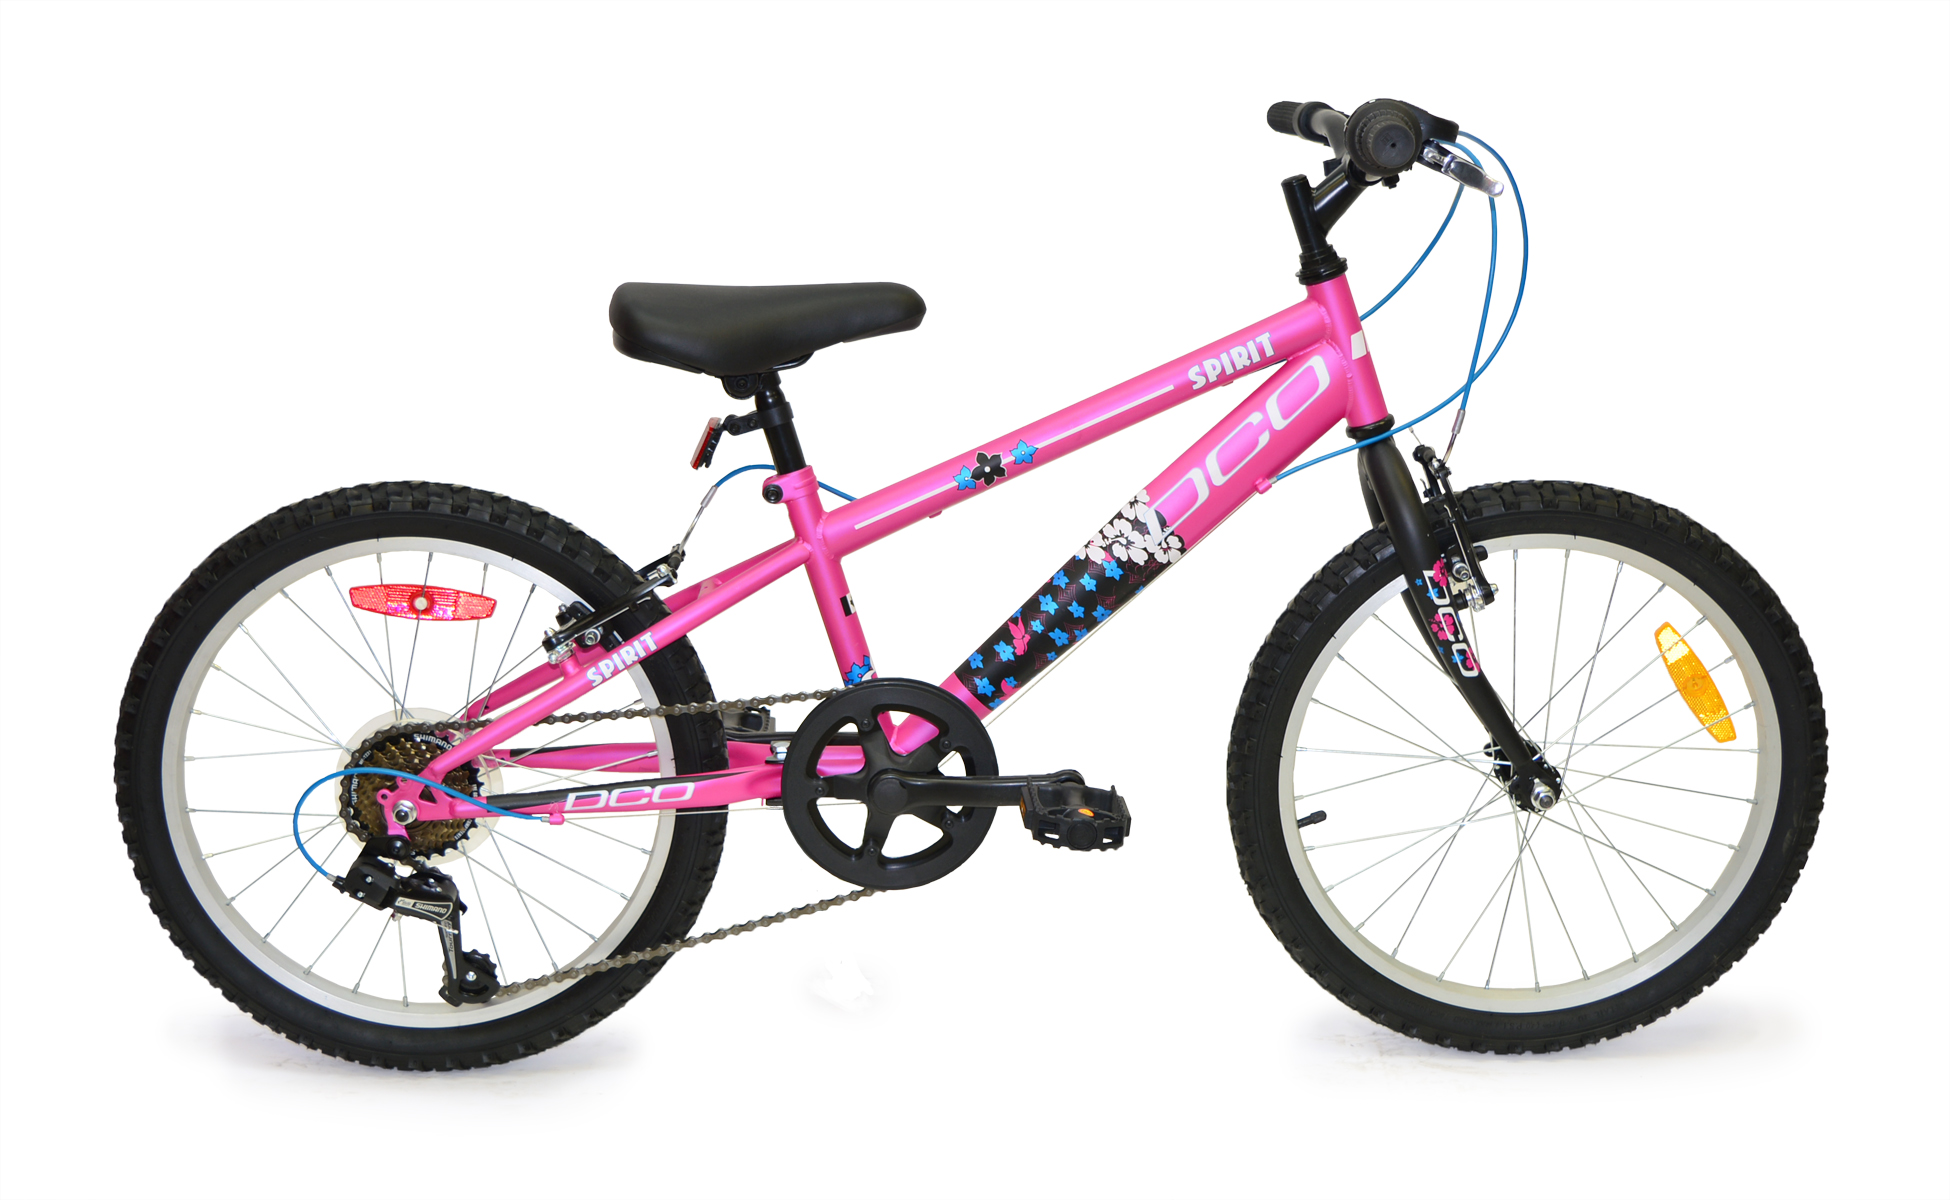 DCO Spirit 20in Girls Childrens Bicycle